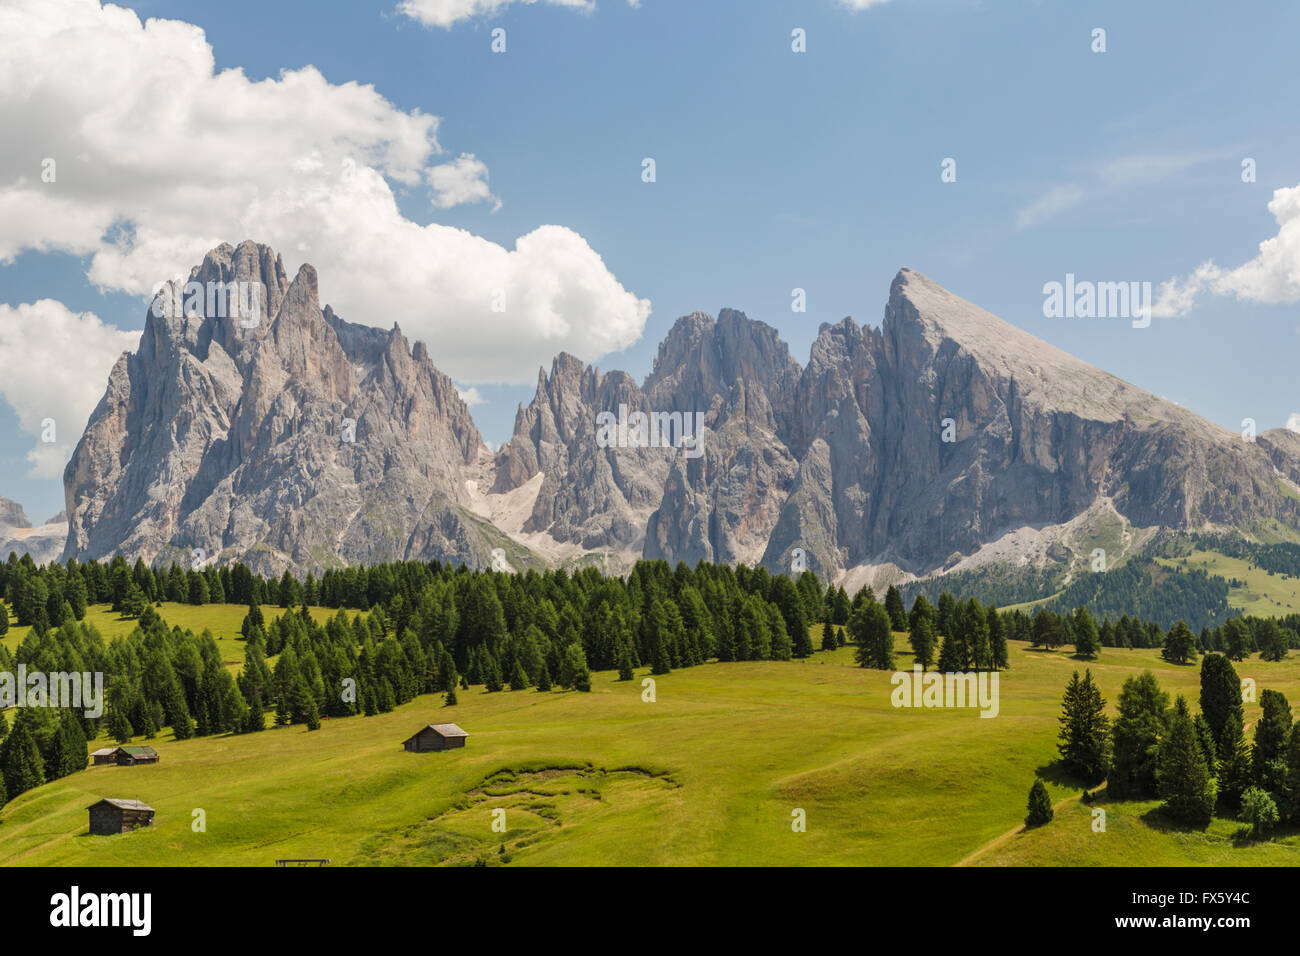 Barns with high mountains in background and trees and forest, Selva, val Gardena, Dolomites, Italy - Stock Image